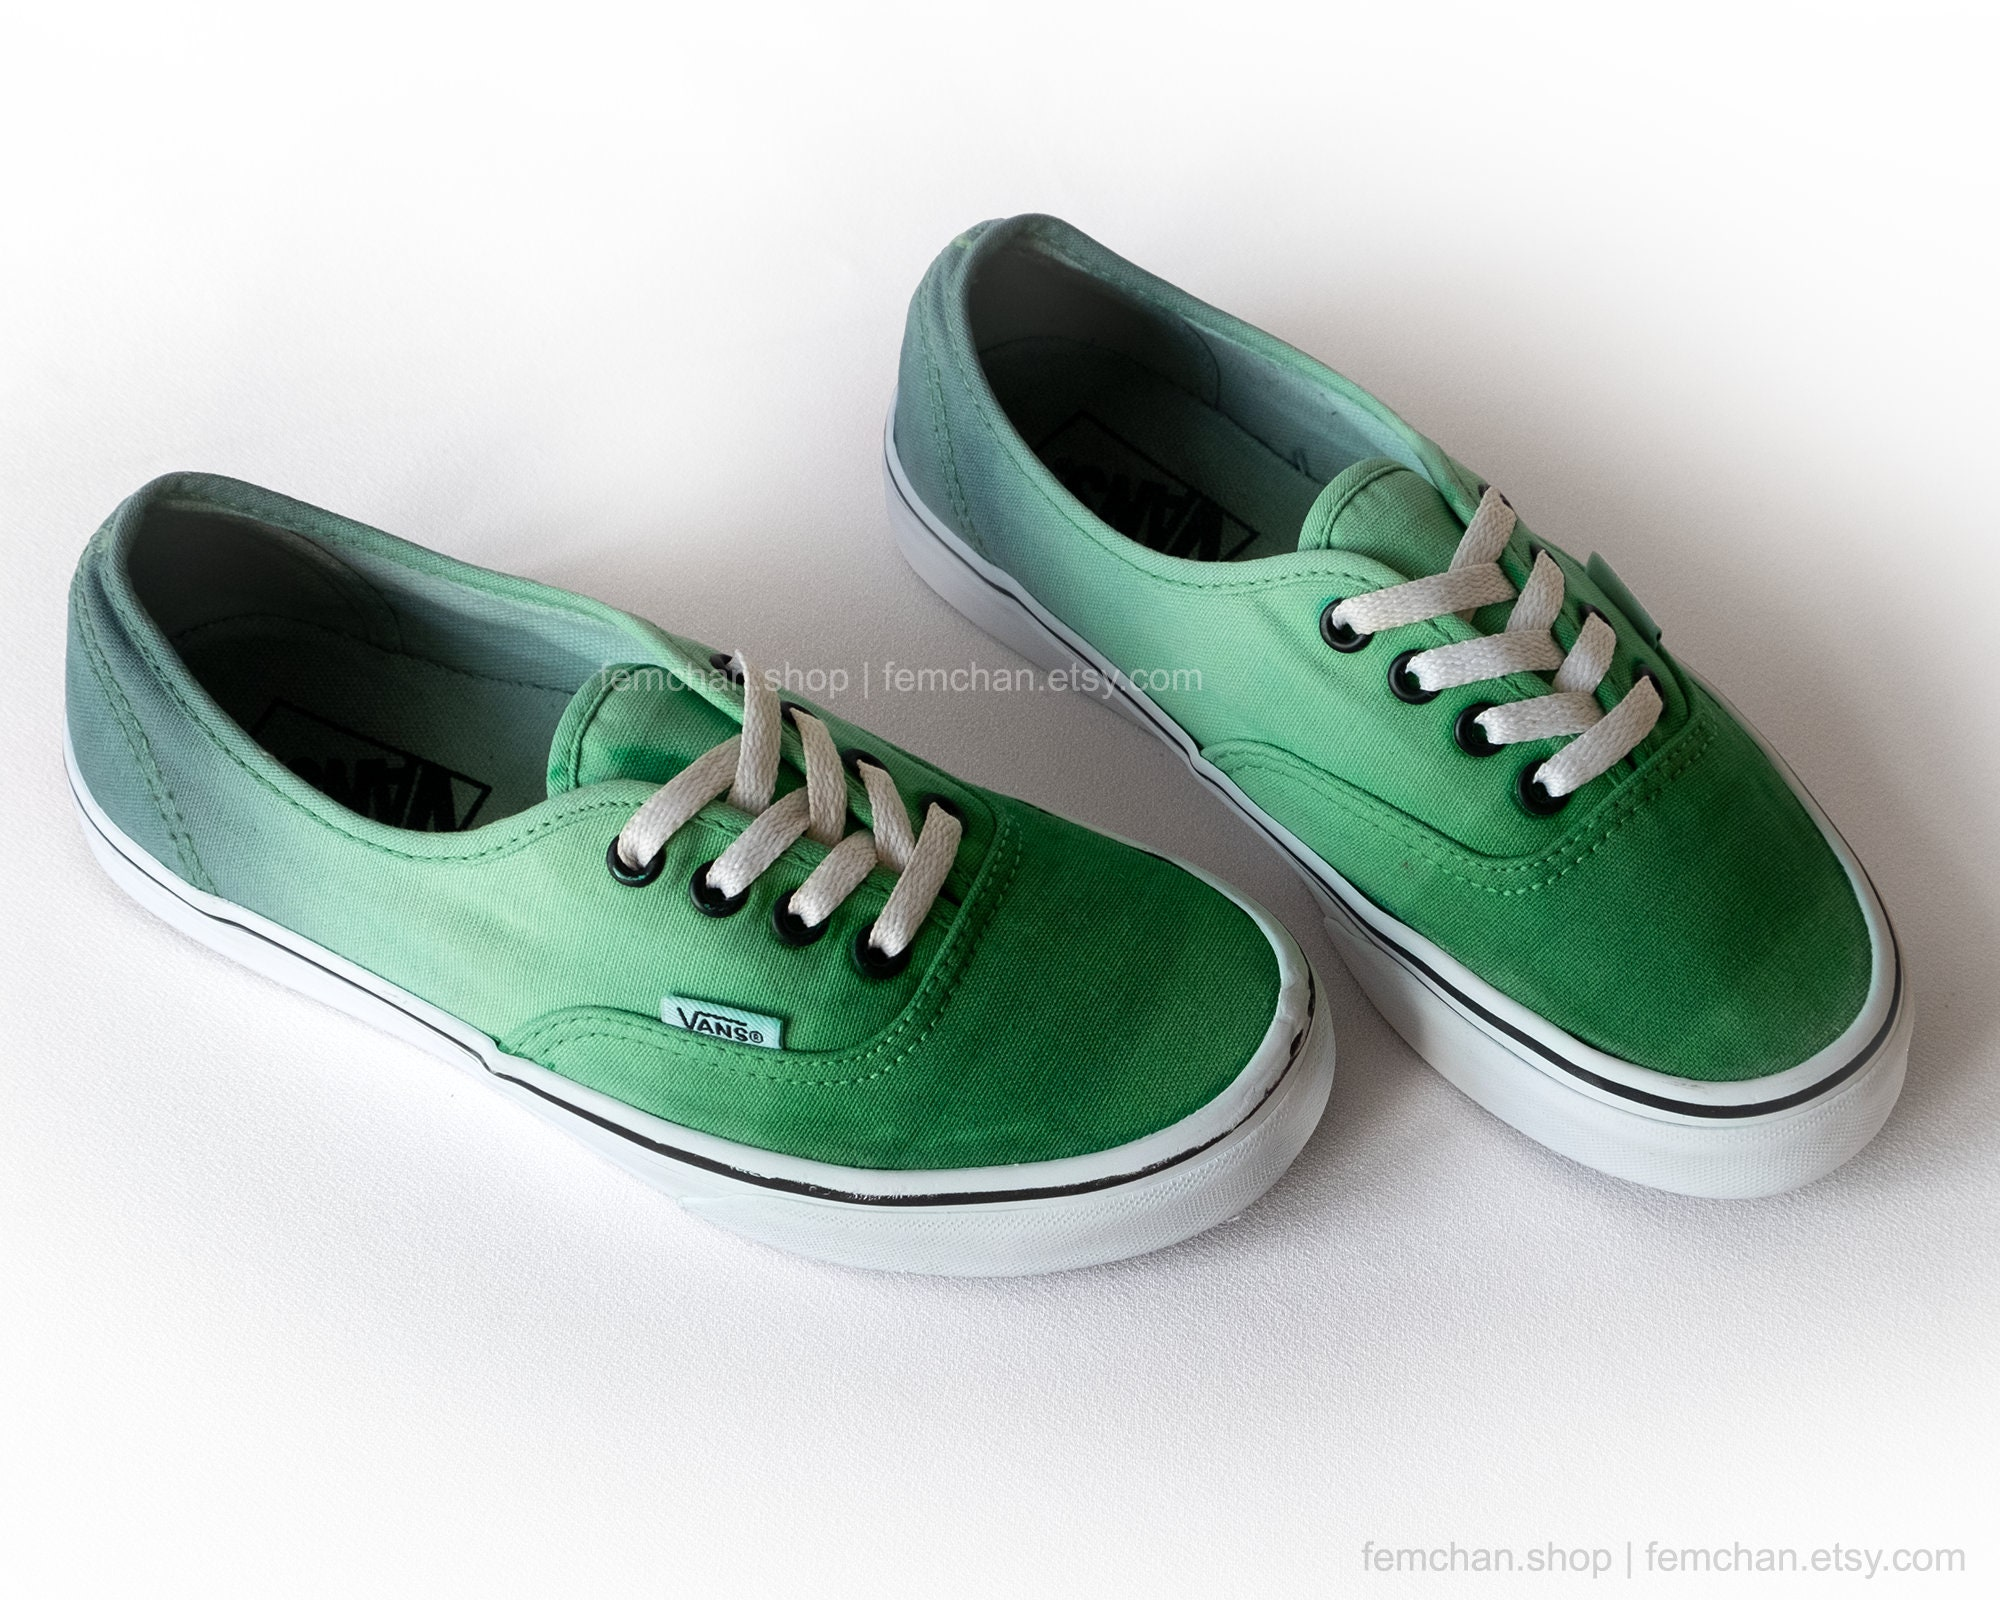 Green Vans shoes, Vans Authentic, ombré dip dye shoes, green tie dyed skate shoes, upcycled vintage shoes, 36,5 (UK 4, us wo 6.5, us men 5)